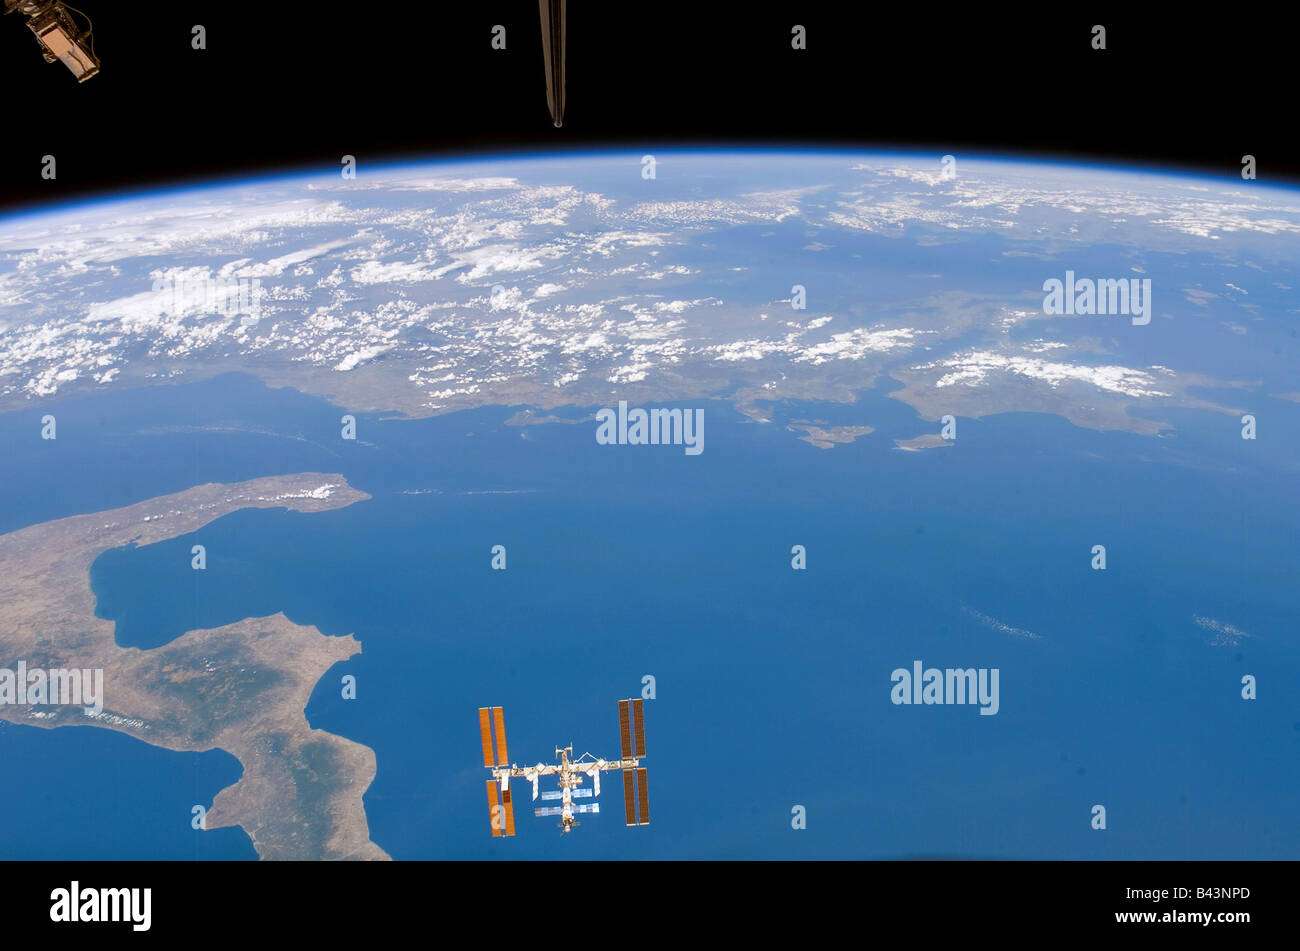 International Space Station above earth with a partial view of Italy - Stock Image